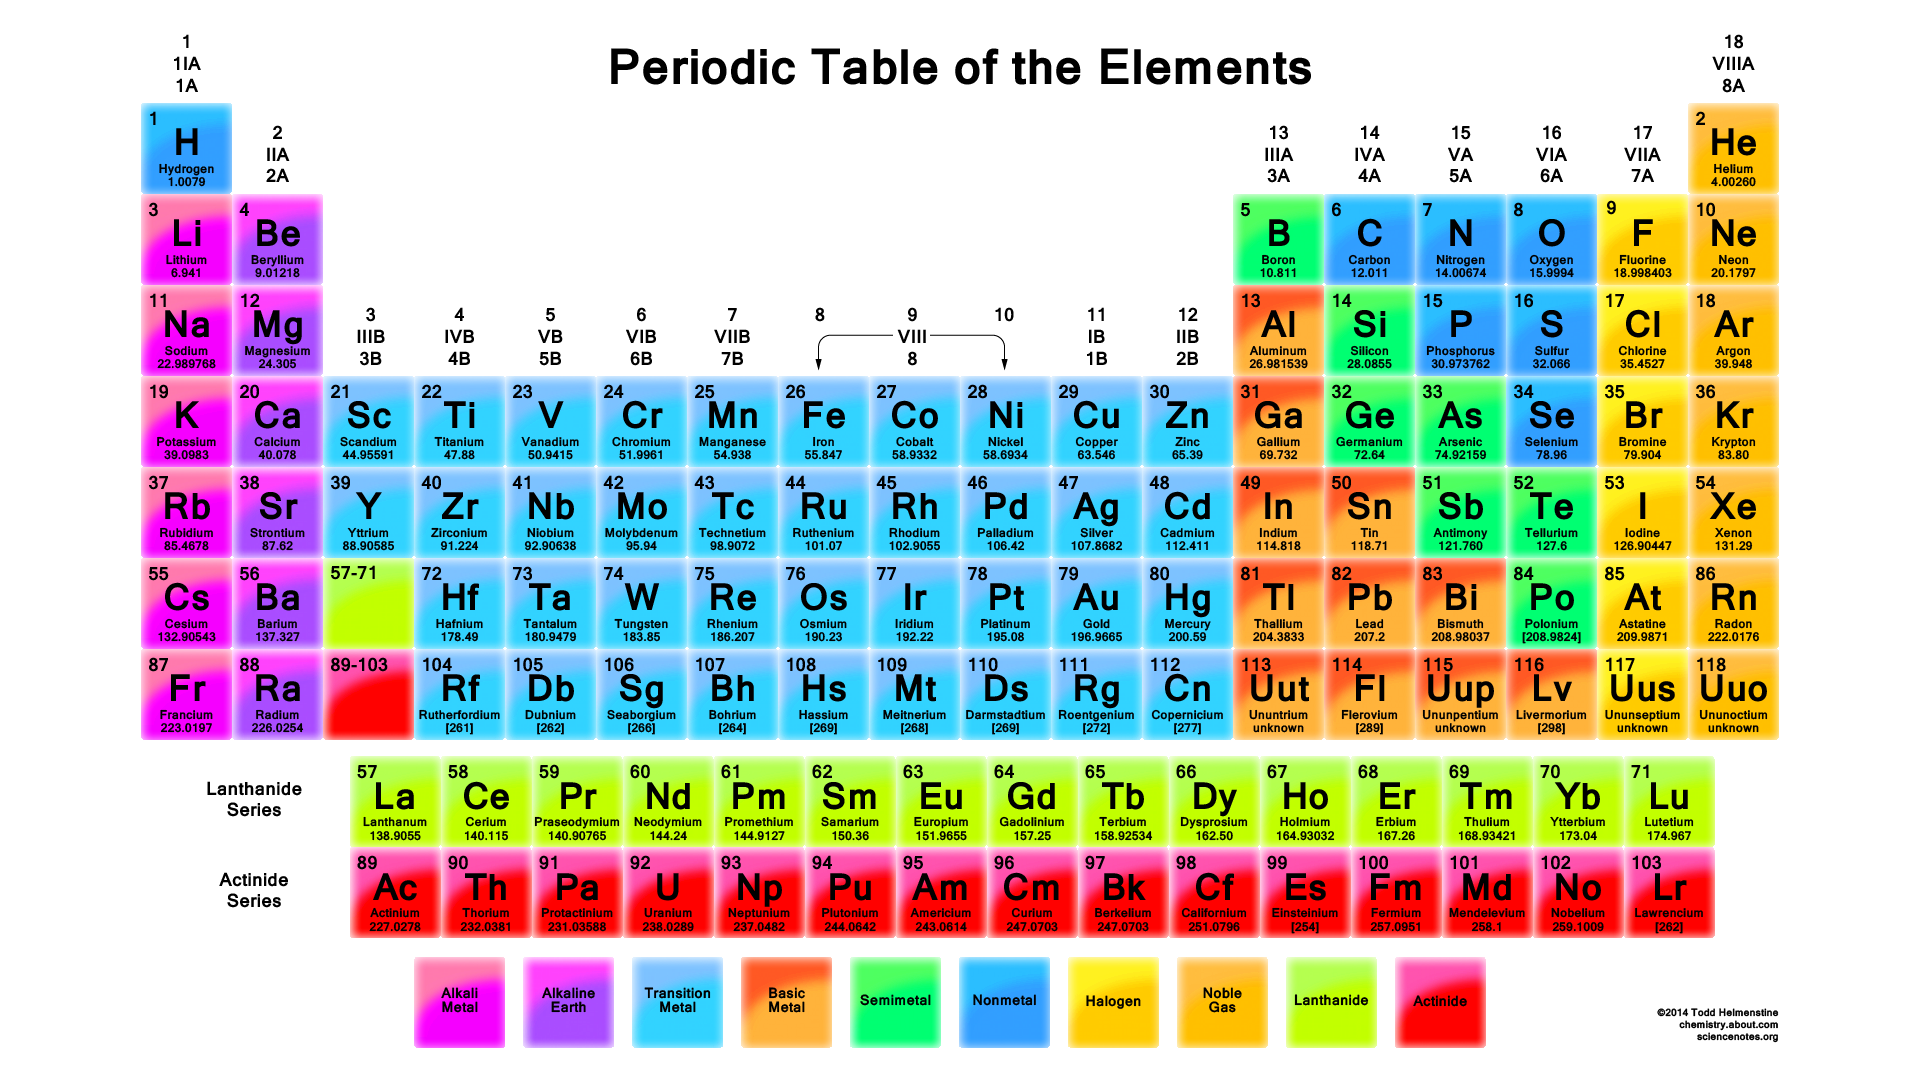 Http Sciencenotes Org Printable Periodic Table Of Elements